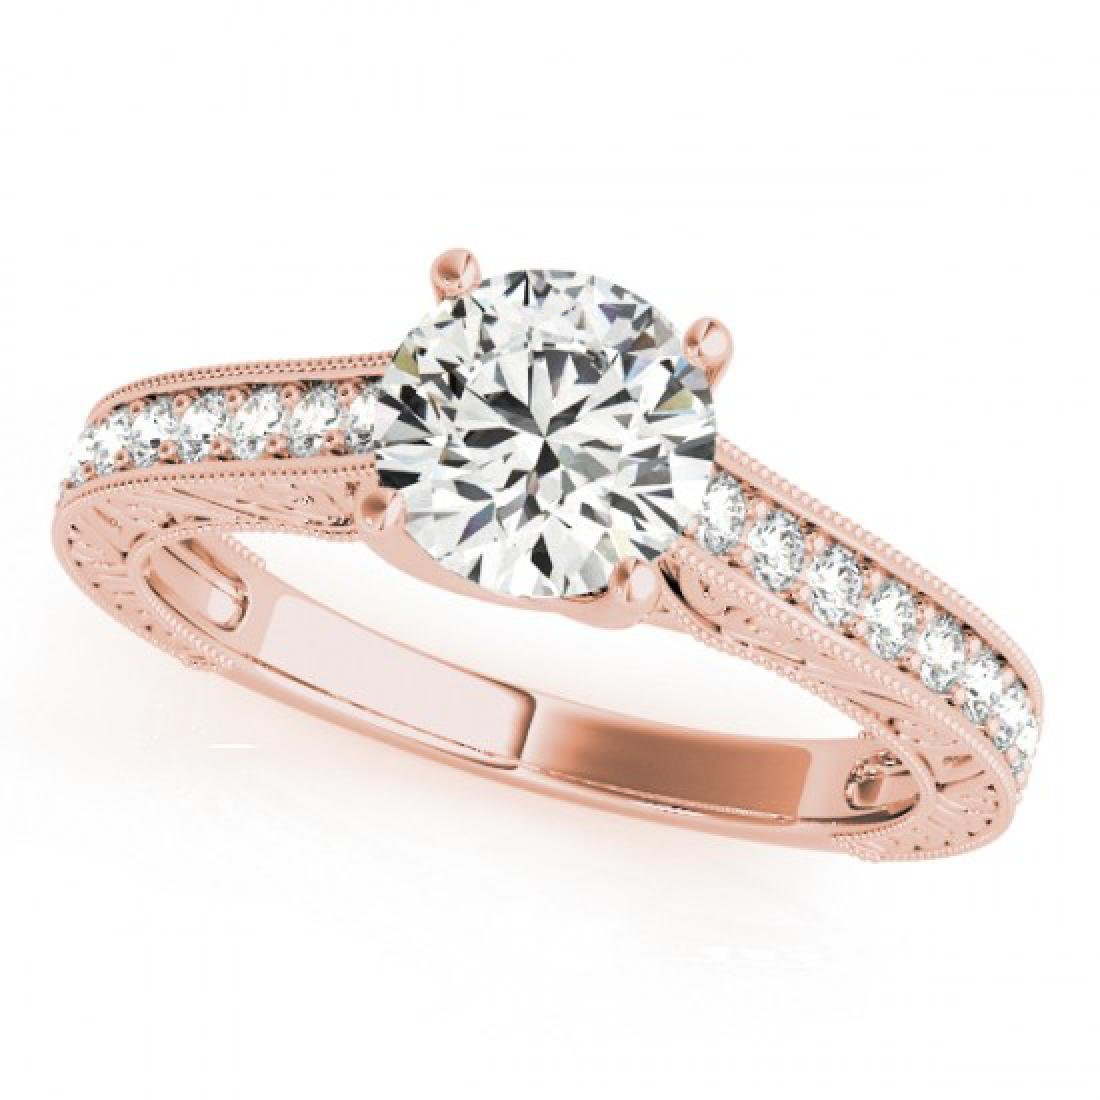 1.07 CTW Certified VS/SI Diamond Solitaire Ring 14K